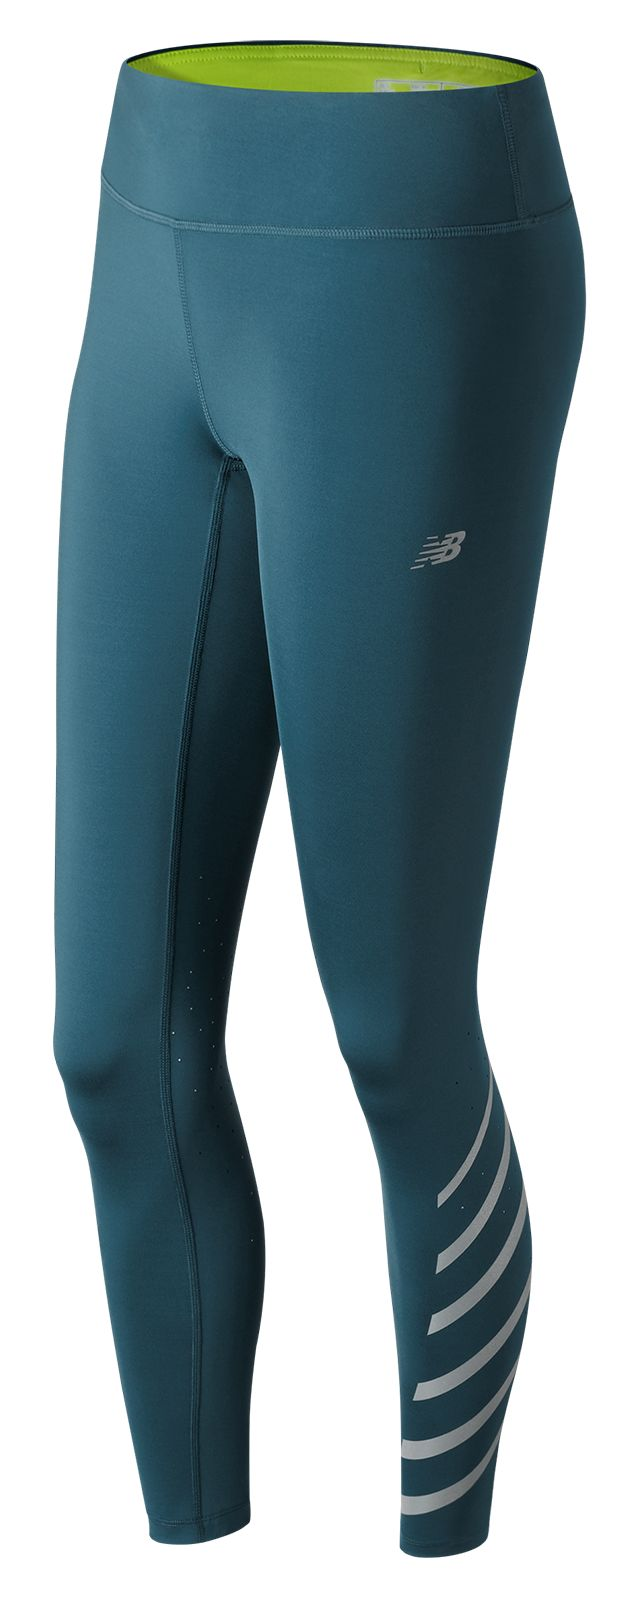 Women's Viz Tight